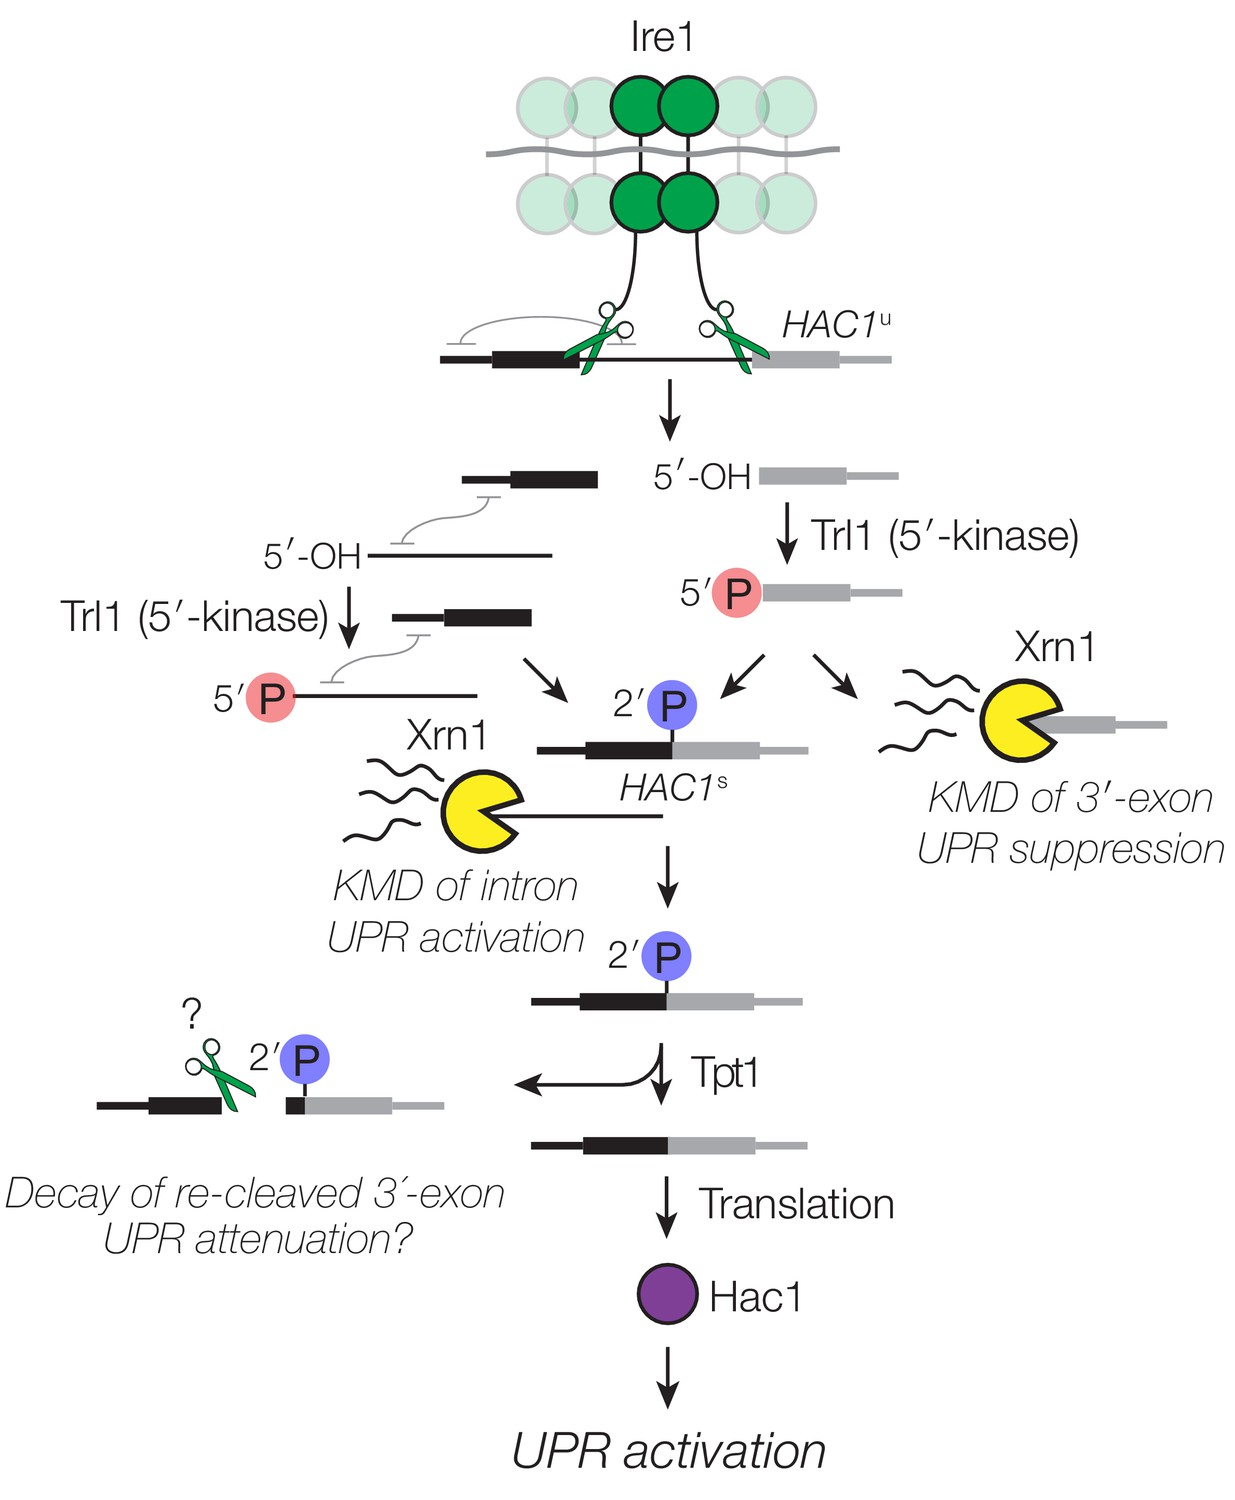 Multiple decay events target HAC1 mRNA during splicing to